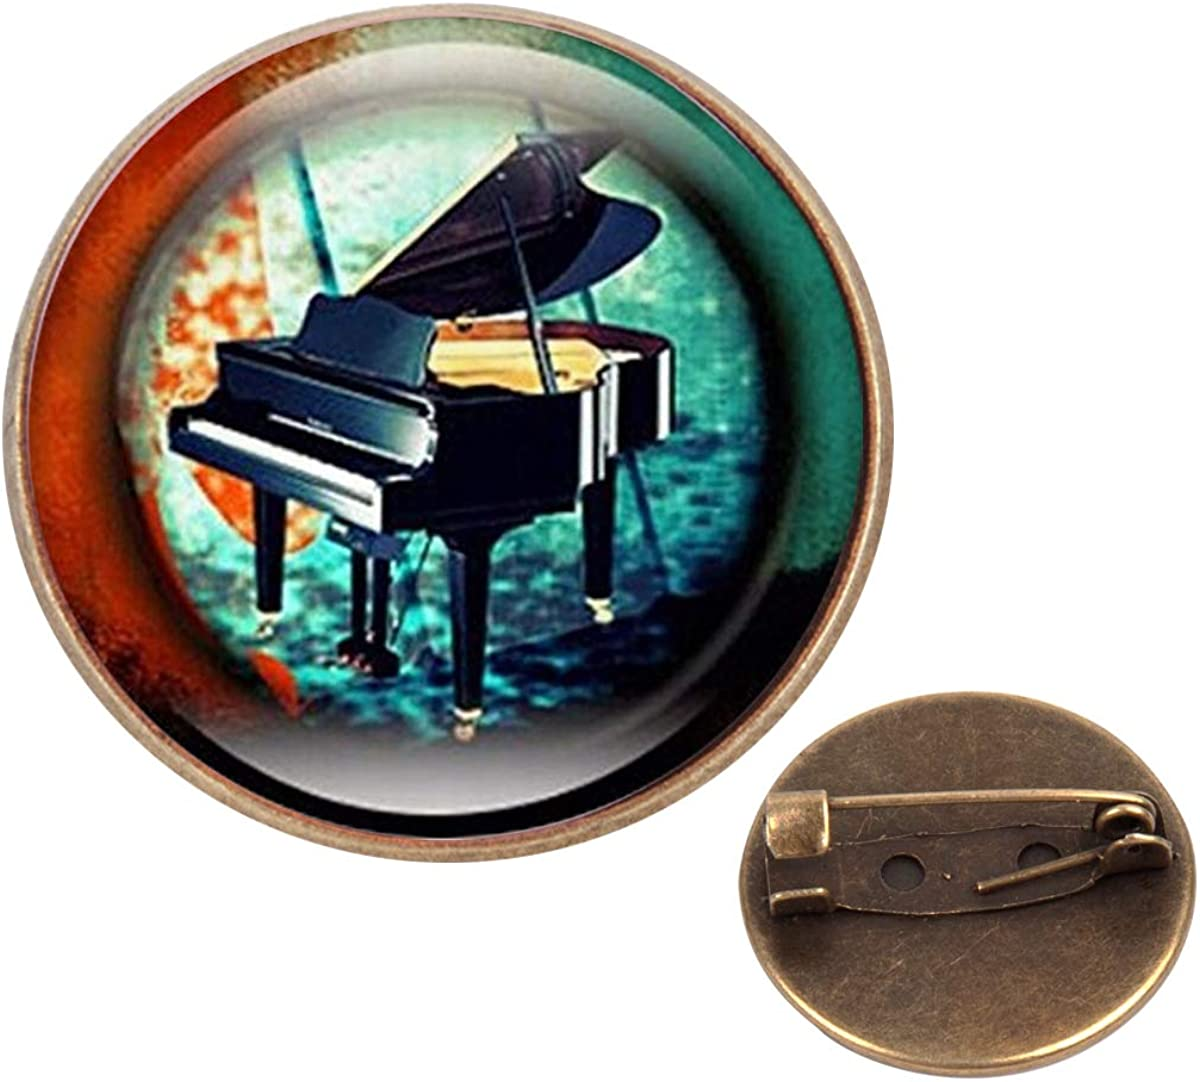 Pinback Buttons Badges Pins Music Jewelry Piano Keyboard Musicians Lapel Pin Brooch Clip Trendy Accessory Jacket T-Shirt Bag Hat Shoe